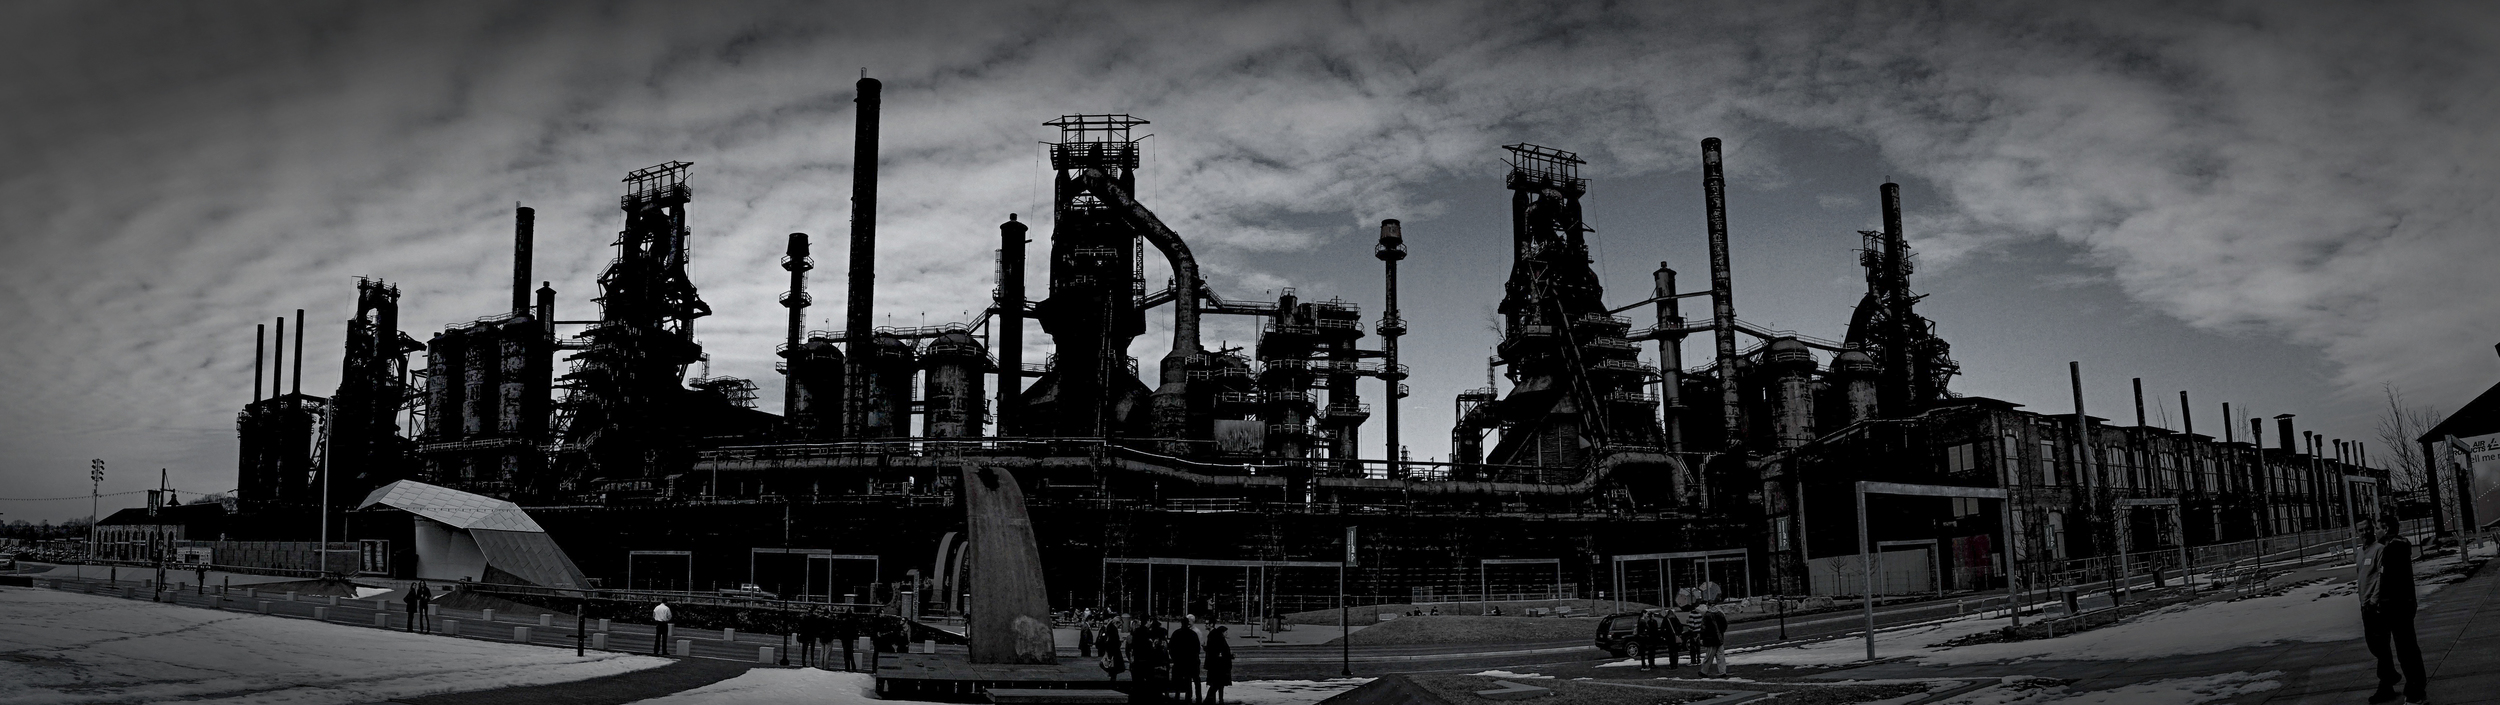 Bethlehem Steel blast furnaces, panoramic